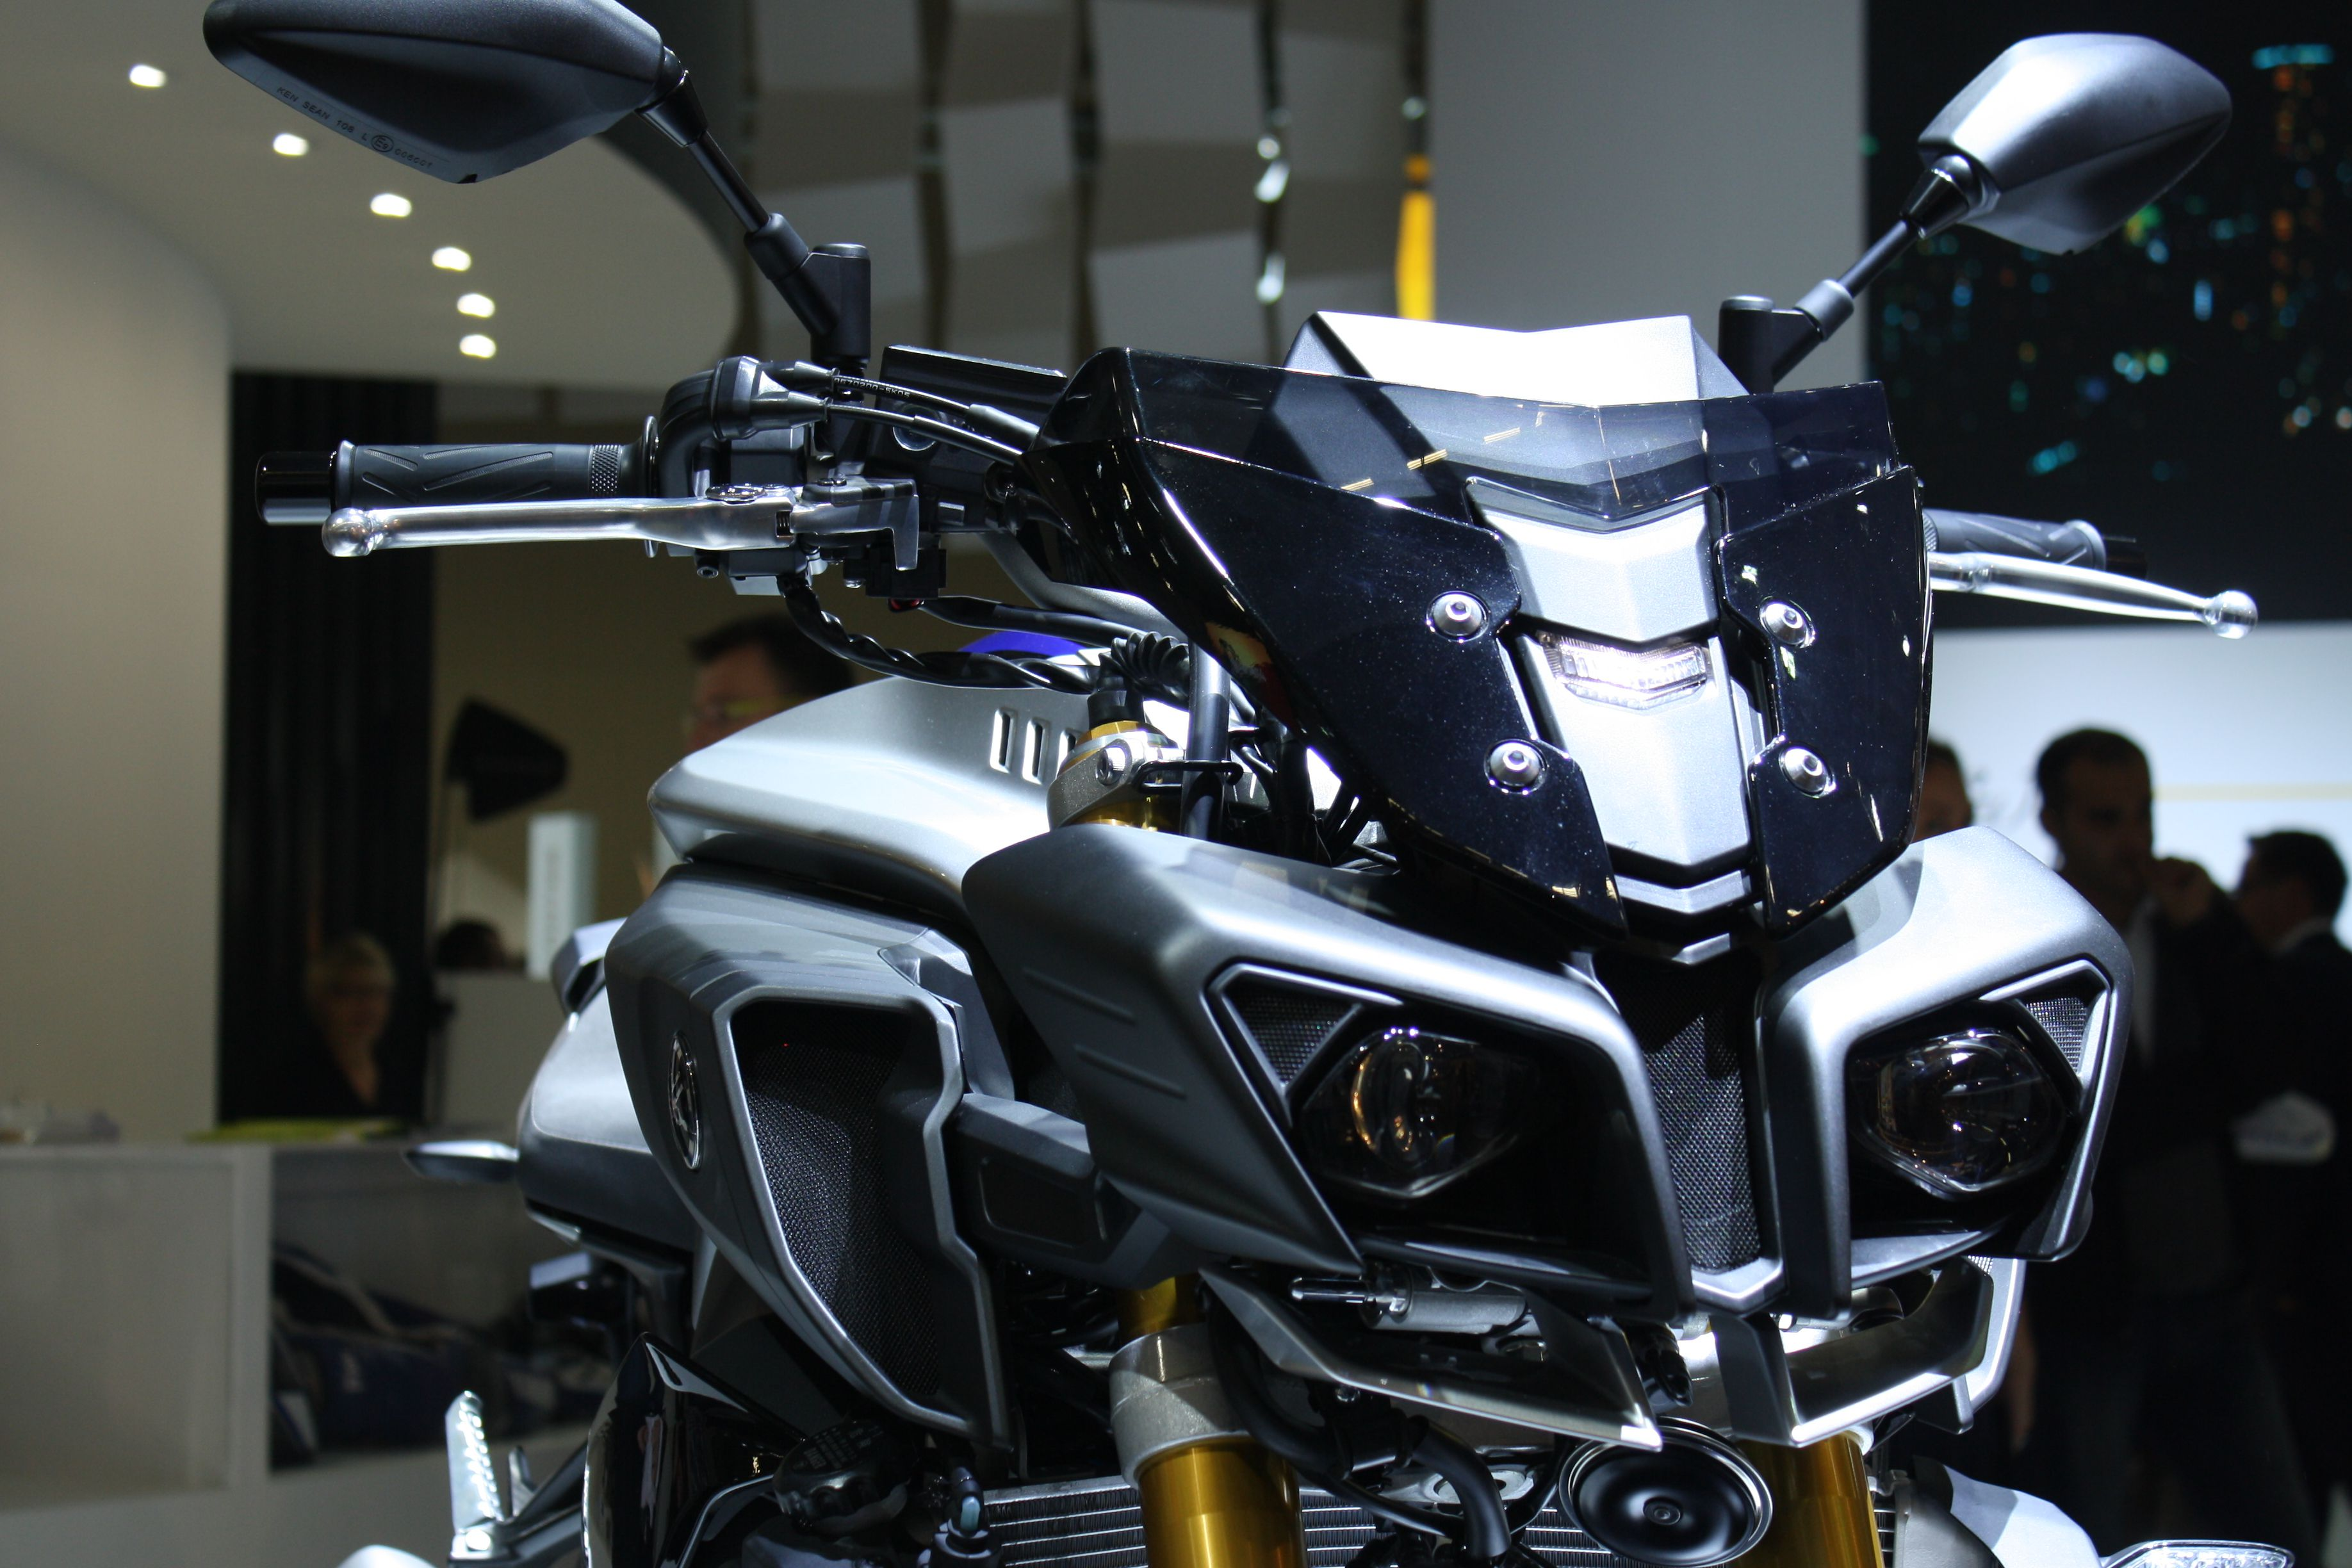 Yamaha announced a new mt 10 today at intermot the mt 10 sp which